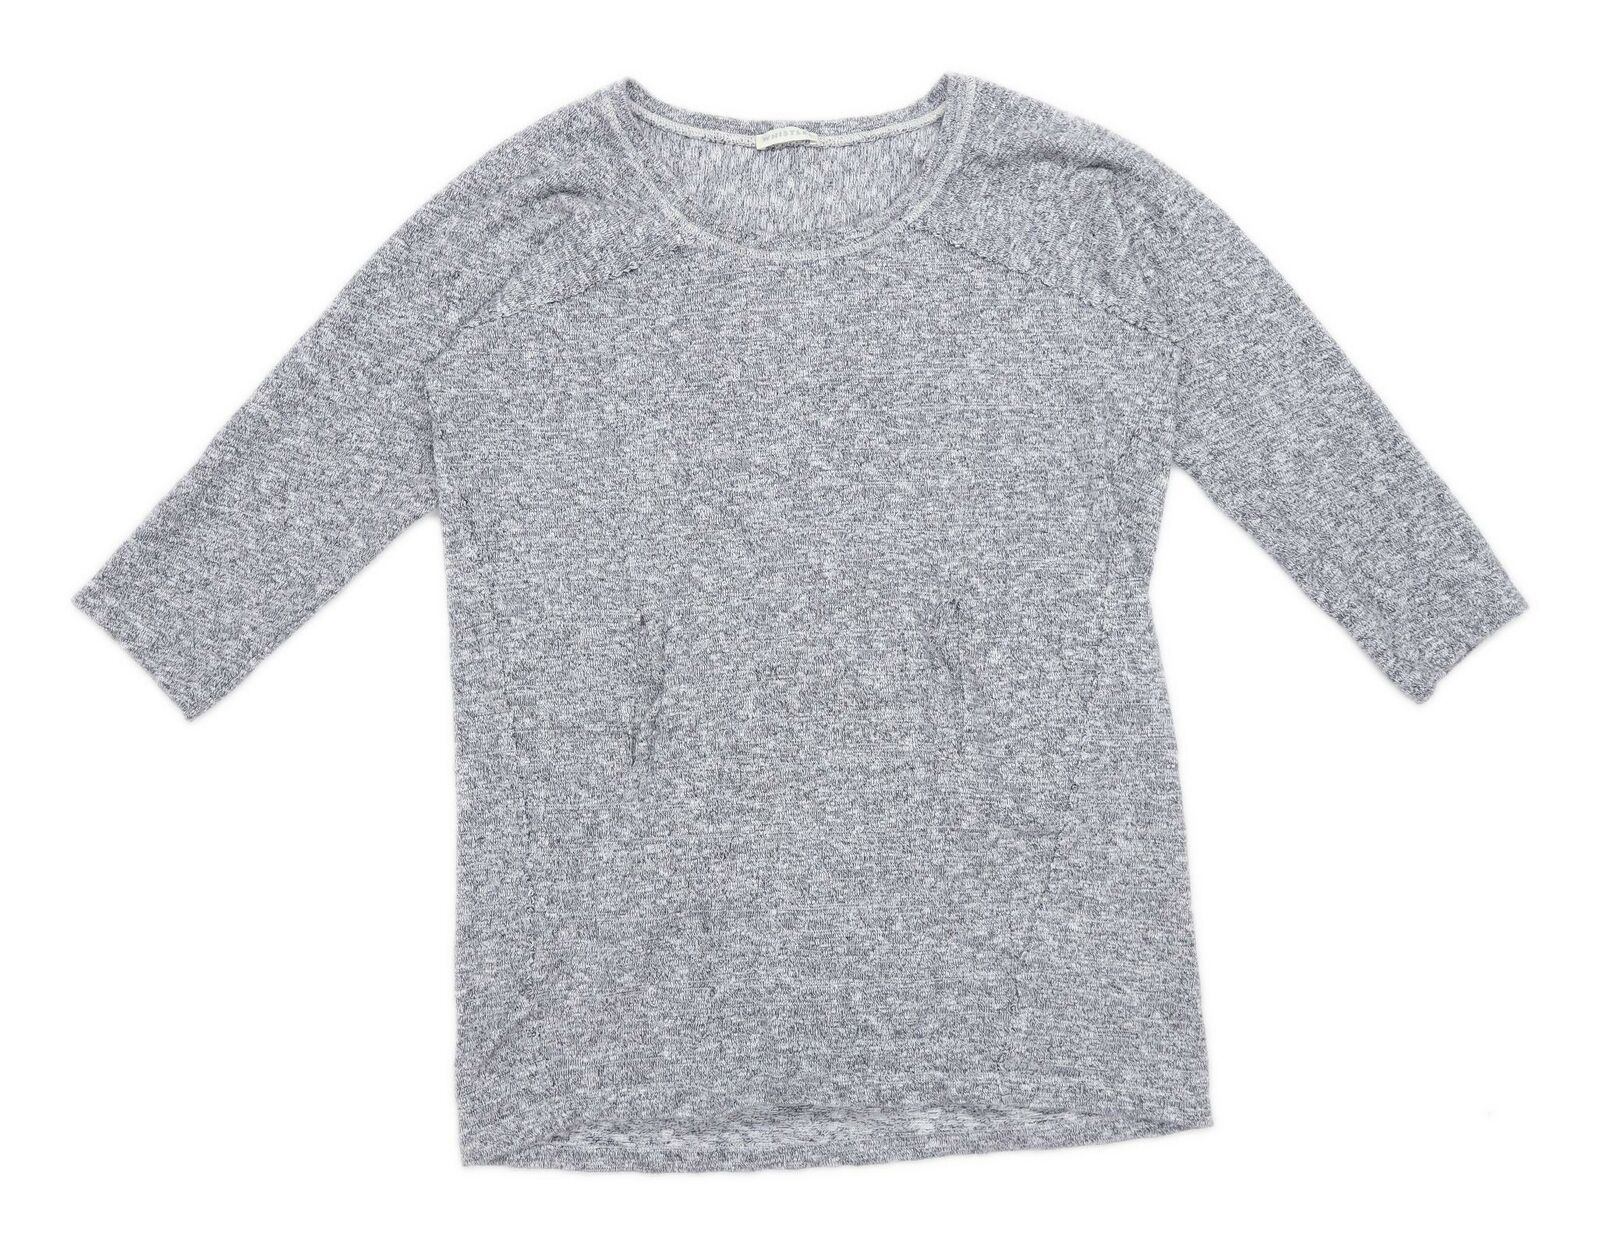 Whistles Womens Grey Jersey Pullover Sweatshirt Size 14